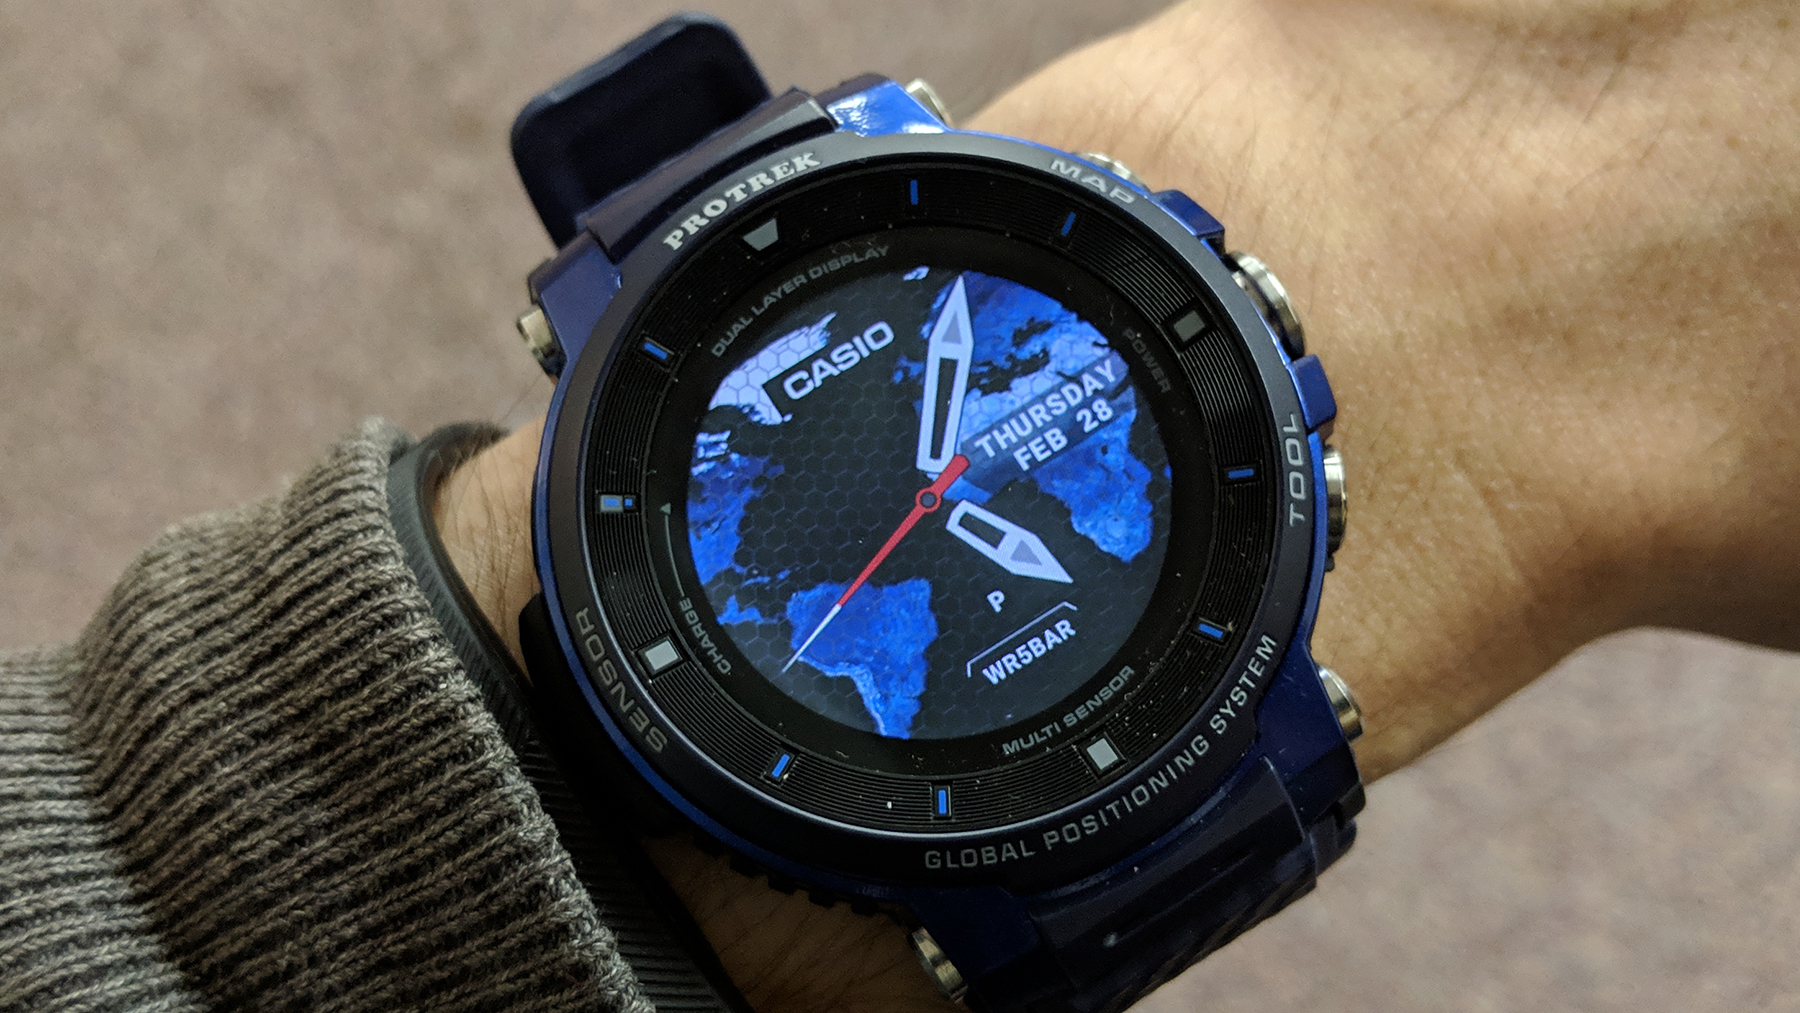 Casio Pro Trek WSD-F30 review: A watch that excels in the great outdoors